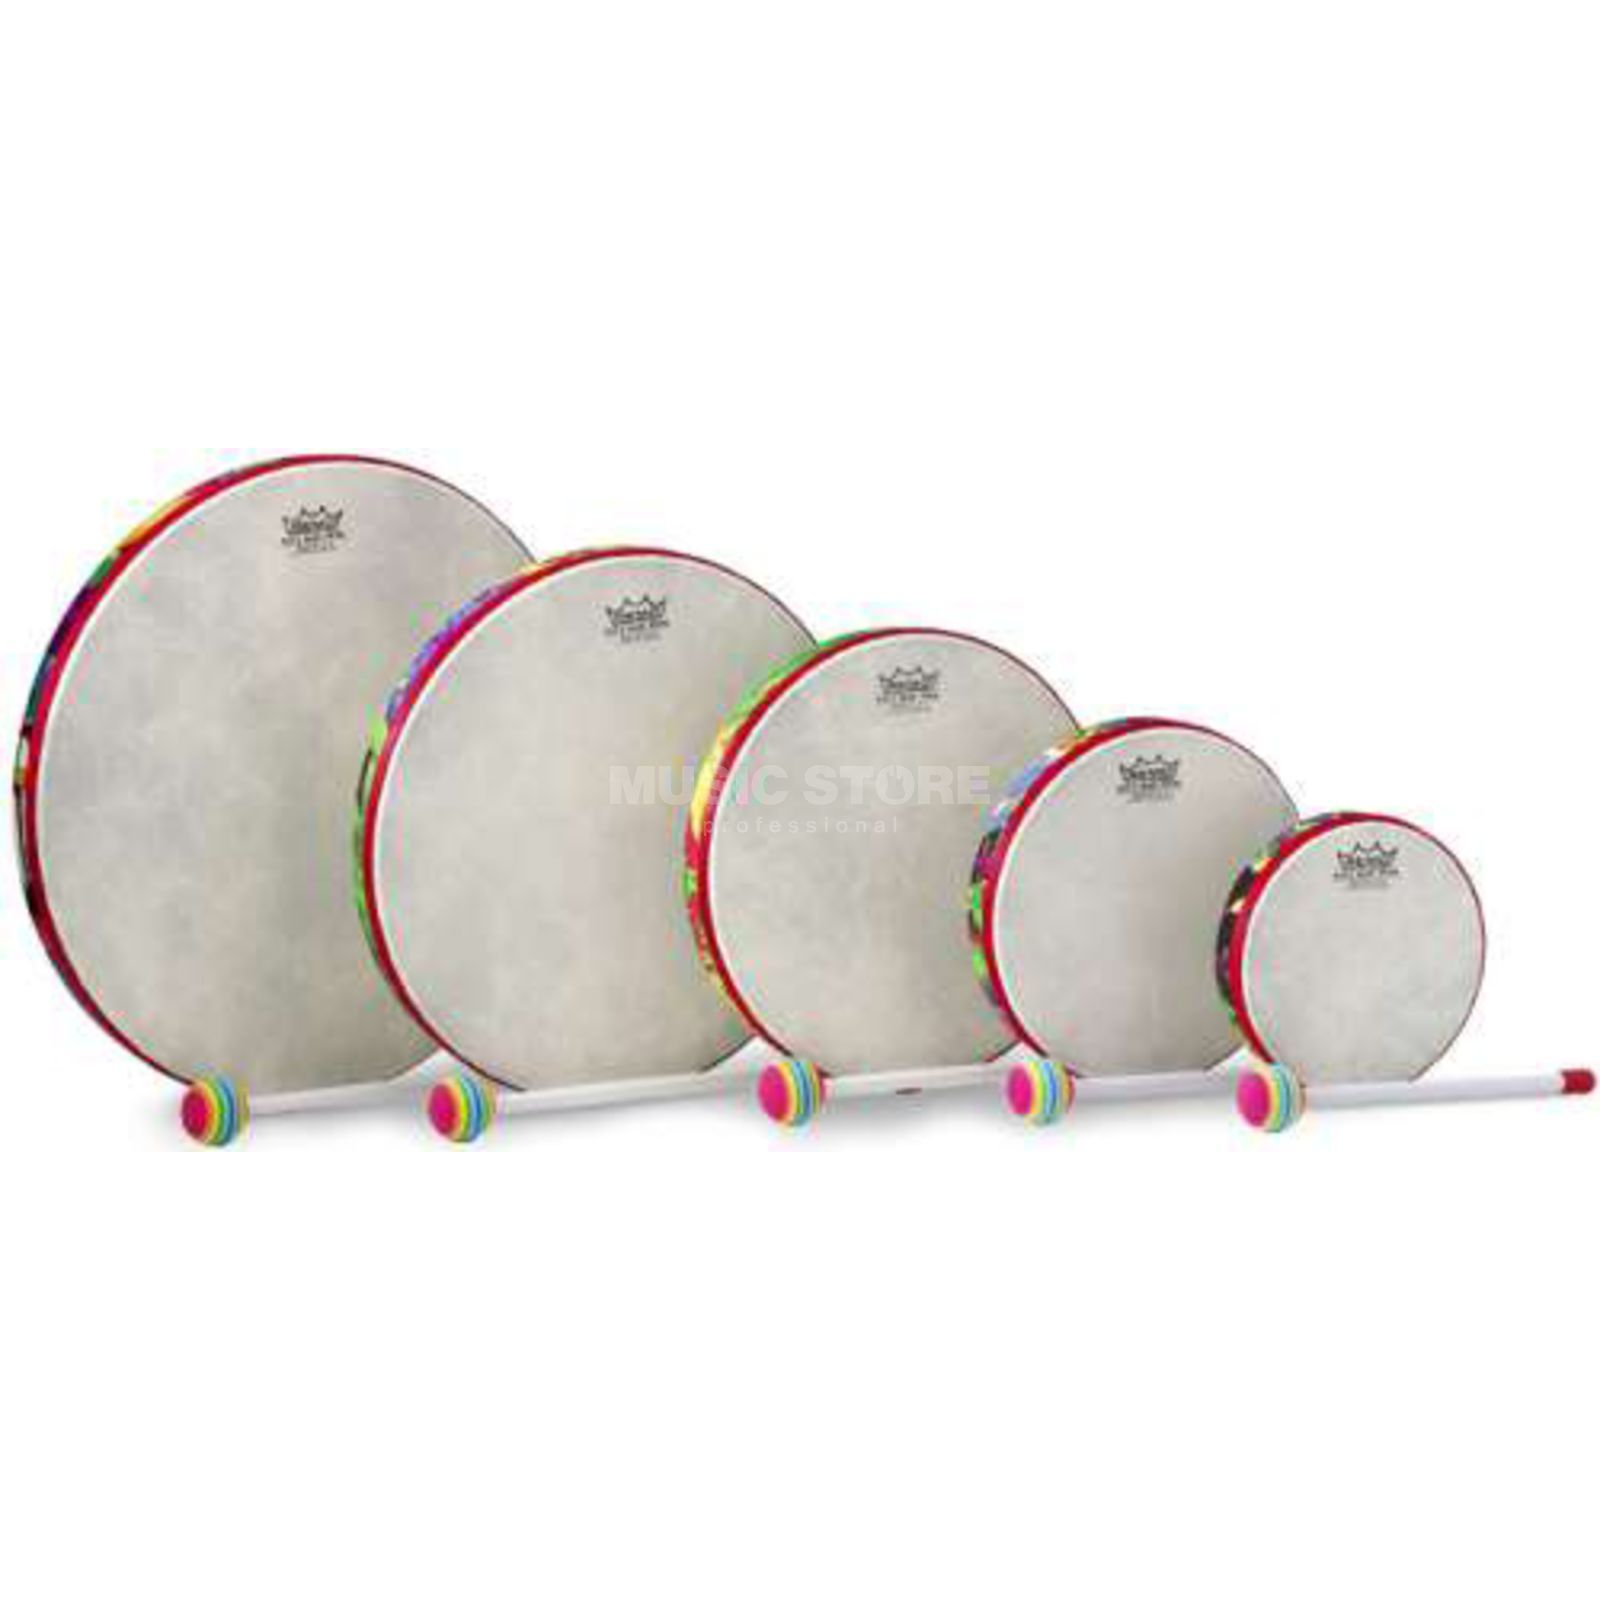 Remo Kids Percussion, 5pc Hand Drum Set Produktbild